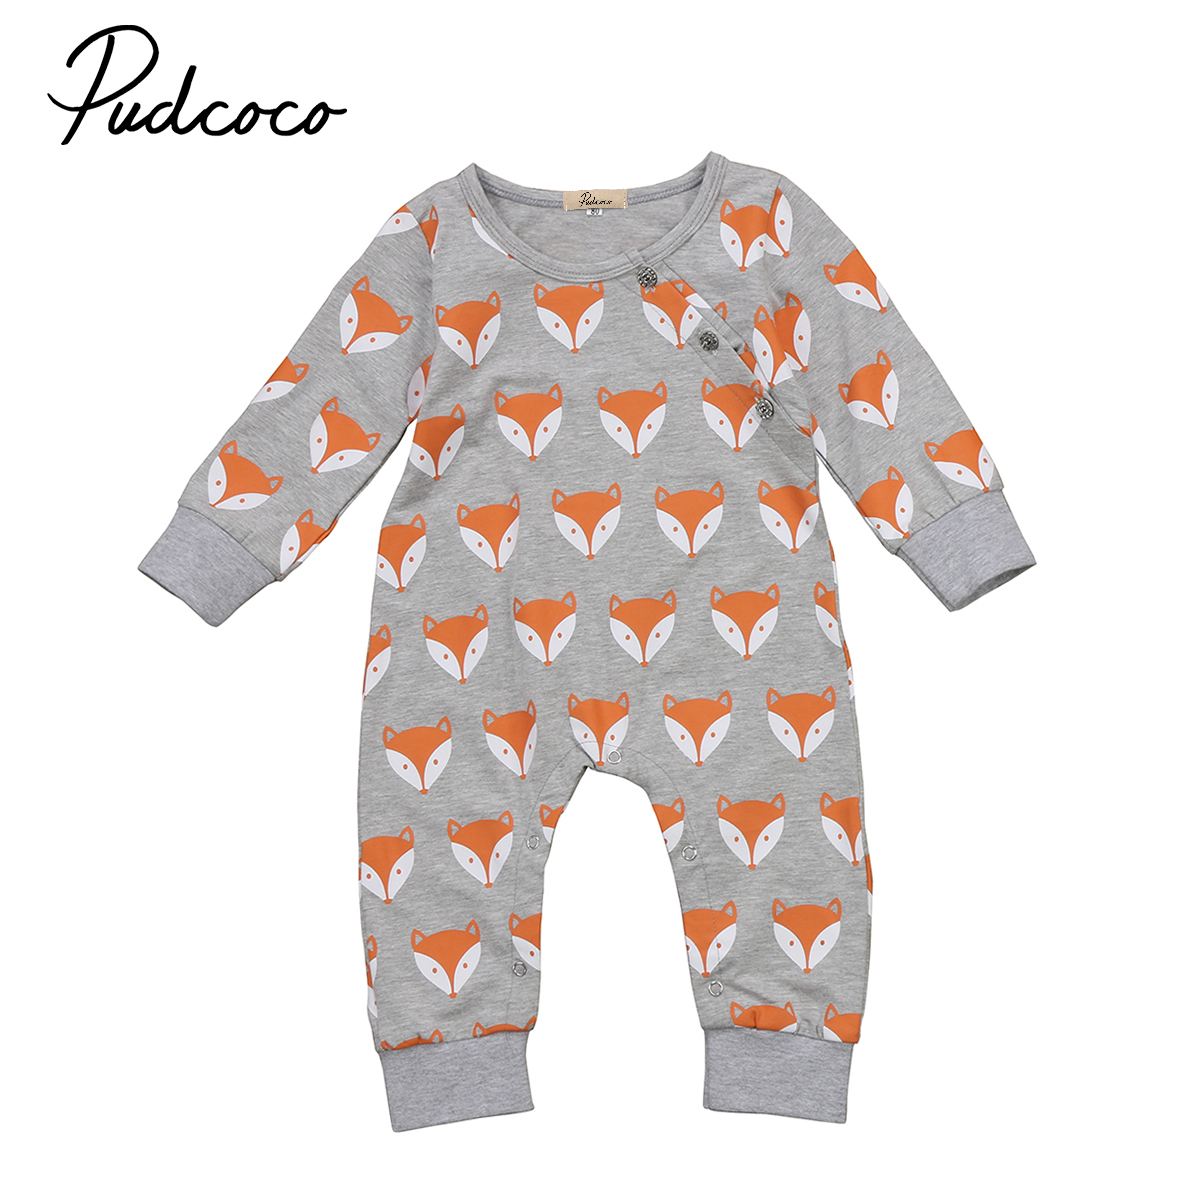 Baby Clothing Infant Baby Girl Boys Cute Fox Print Long sleeve Romper Playsuit Unisex Baby Cotton Clothes Outfit 0-2T